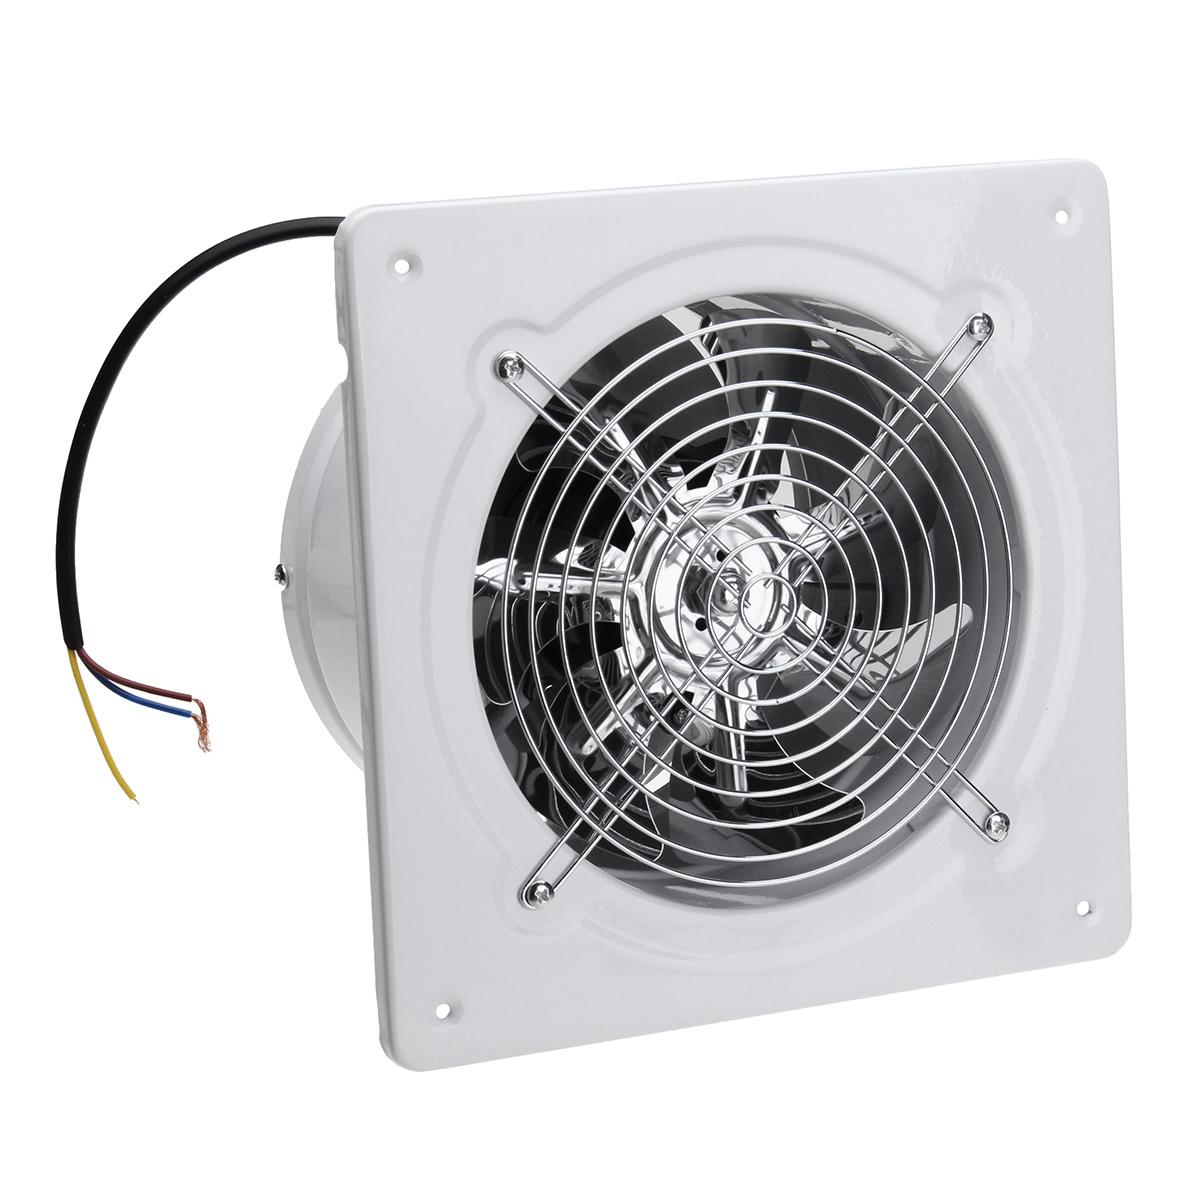 4 Inch 20W 220V High Speed Exhaust Fan Toilet Kitchen Bathroom Hanging Wall Window Glass Small Ventilator Extractor Exhaust Fa4 Inch 20W 220V High Speed Exhaust Fan Toilet Kitchen Bathroom Hanging Wall Window Glass Small Ventilator Extractor Exhaust Fa